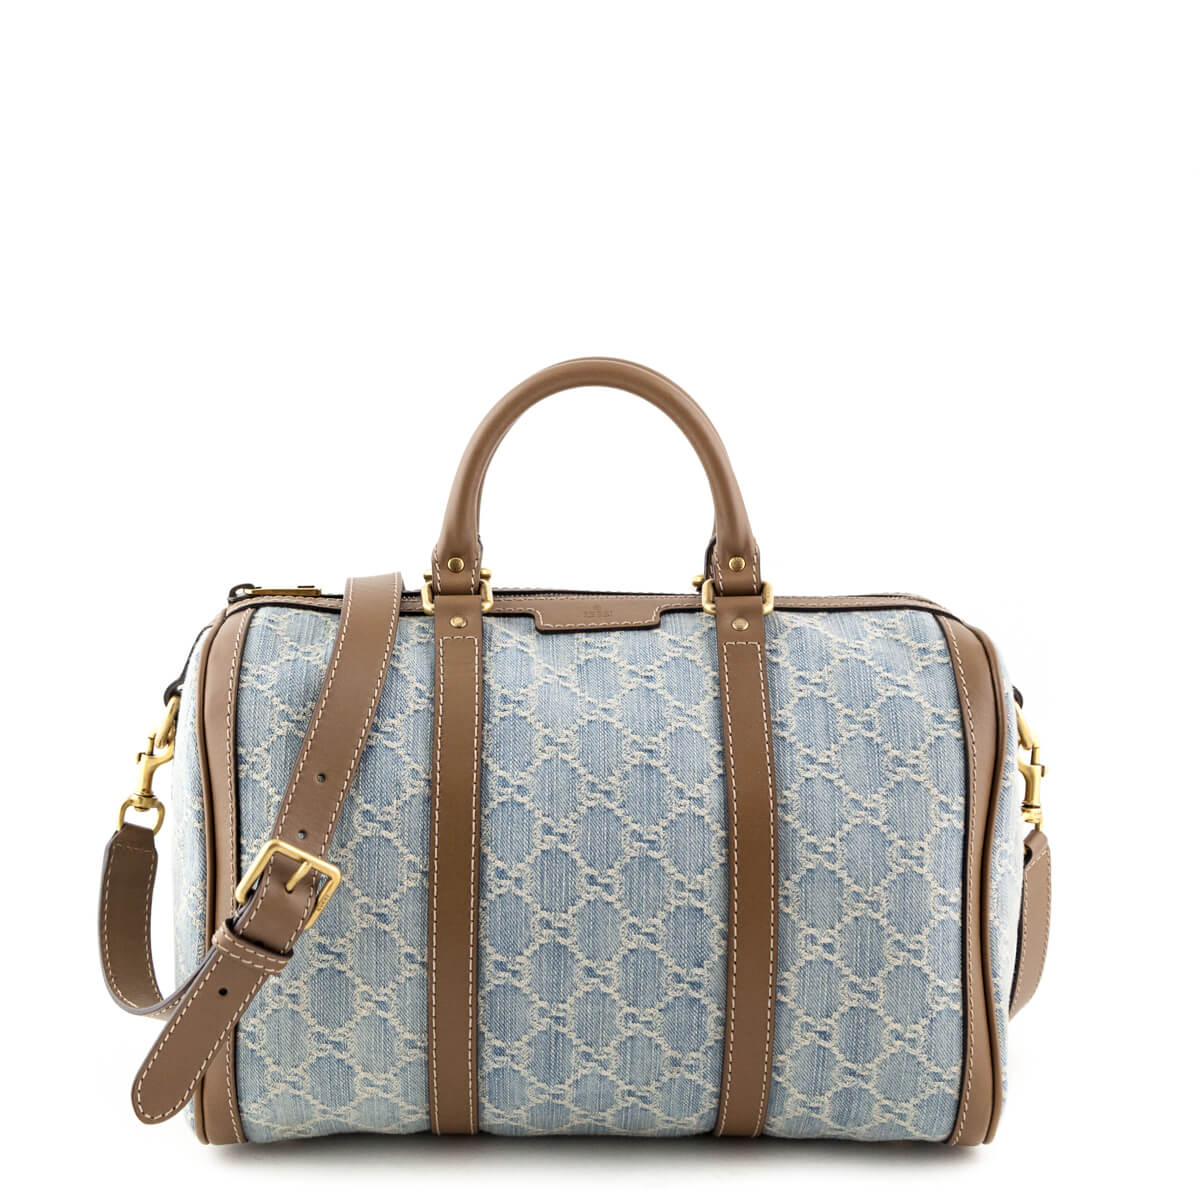 526cf64f9d9bff Gucci Blue GG Denim Web Boston Bag - LOVE that BAG - Preowned Authentic  Designer Handbags ...